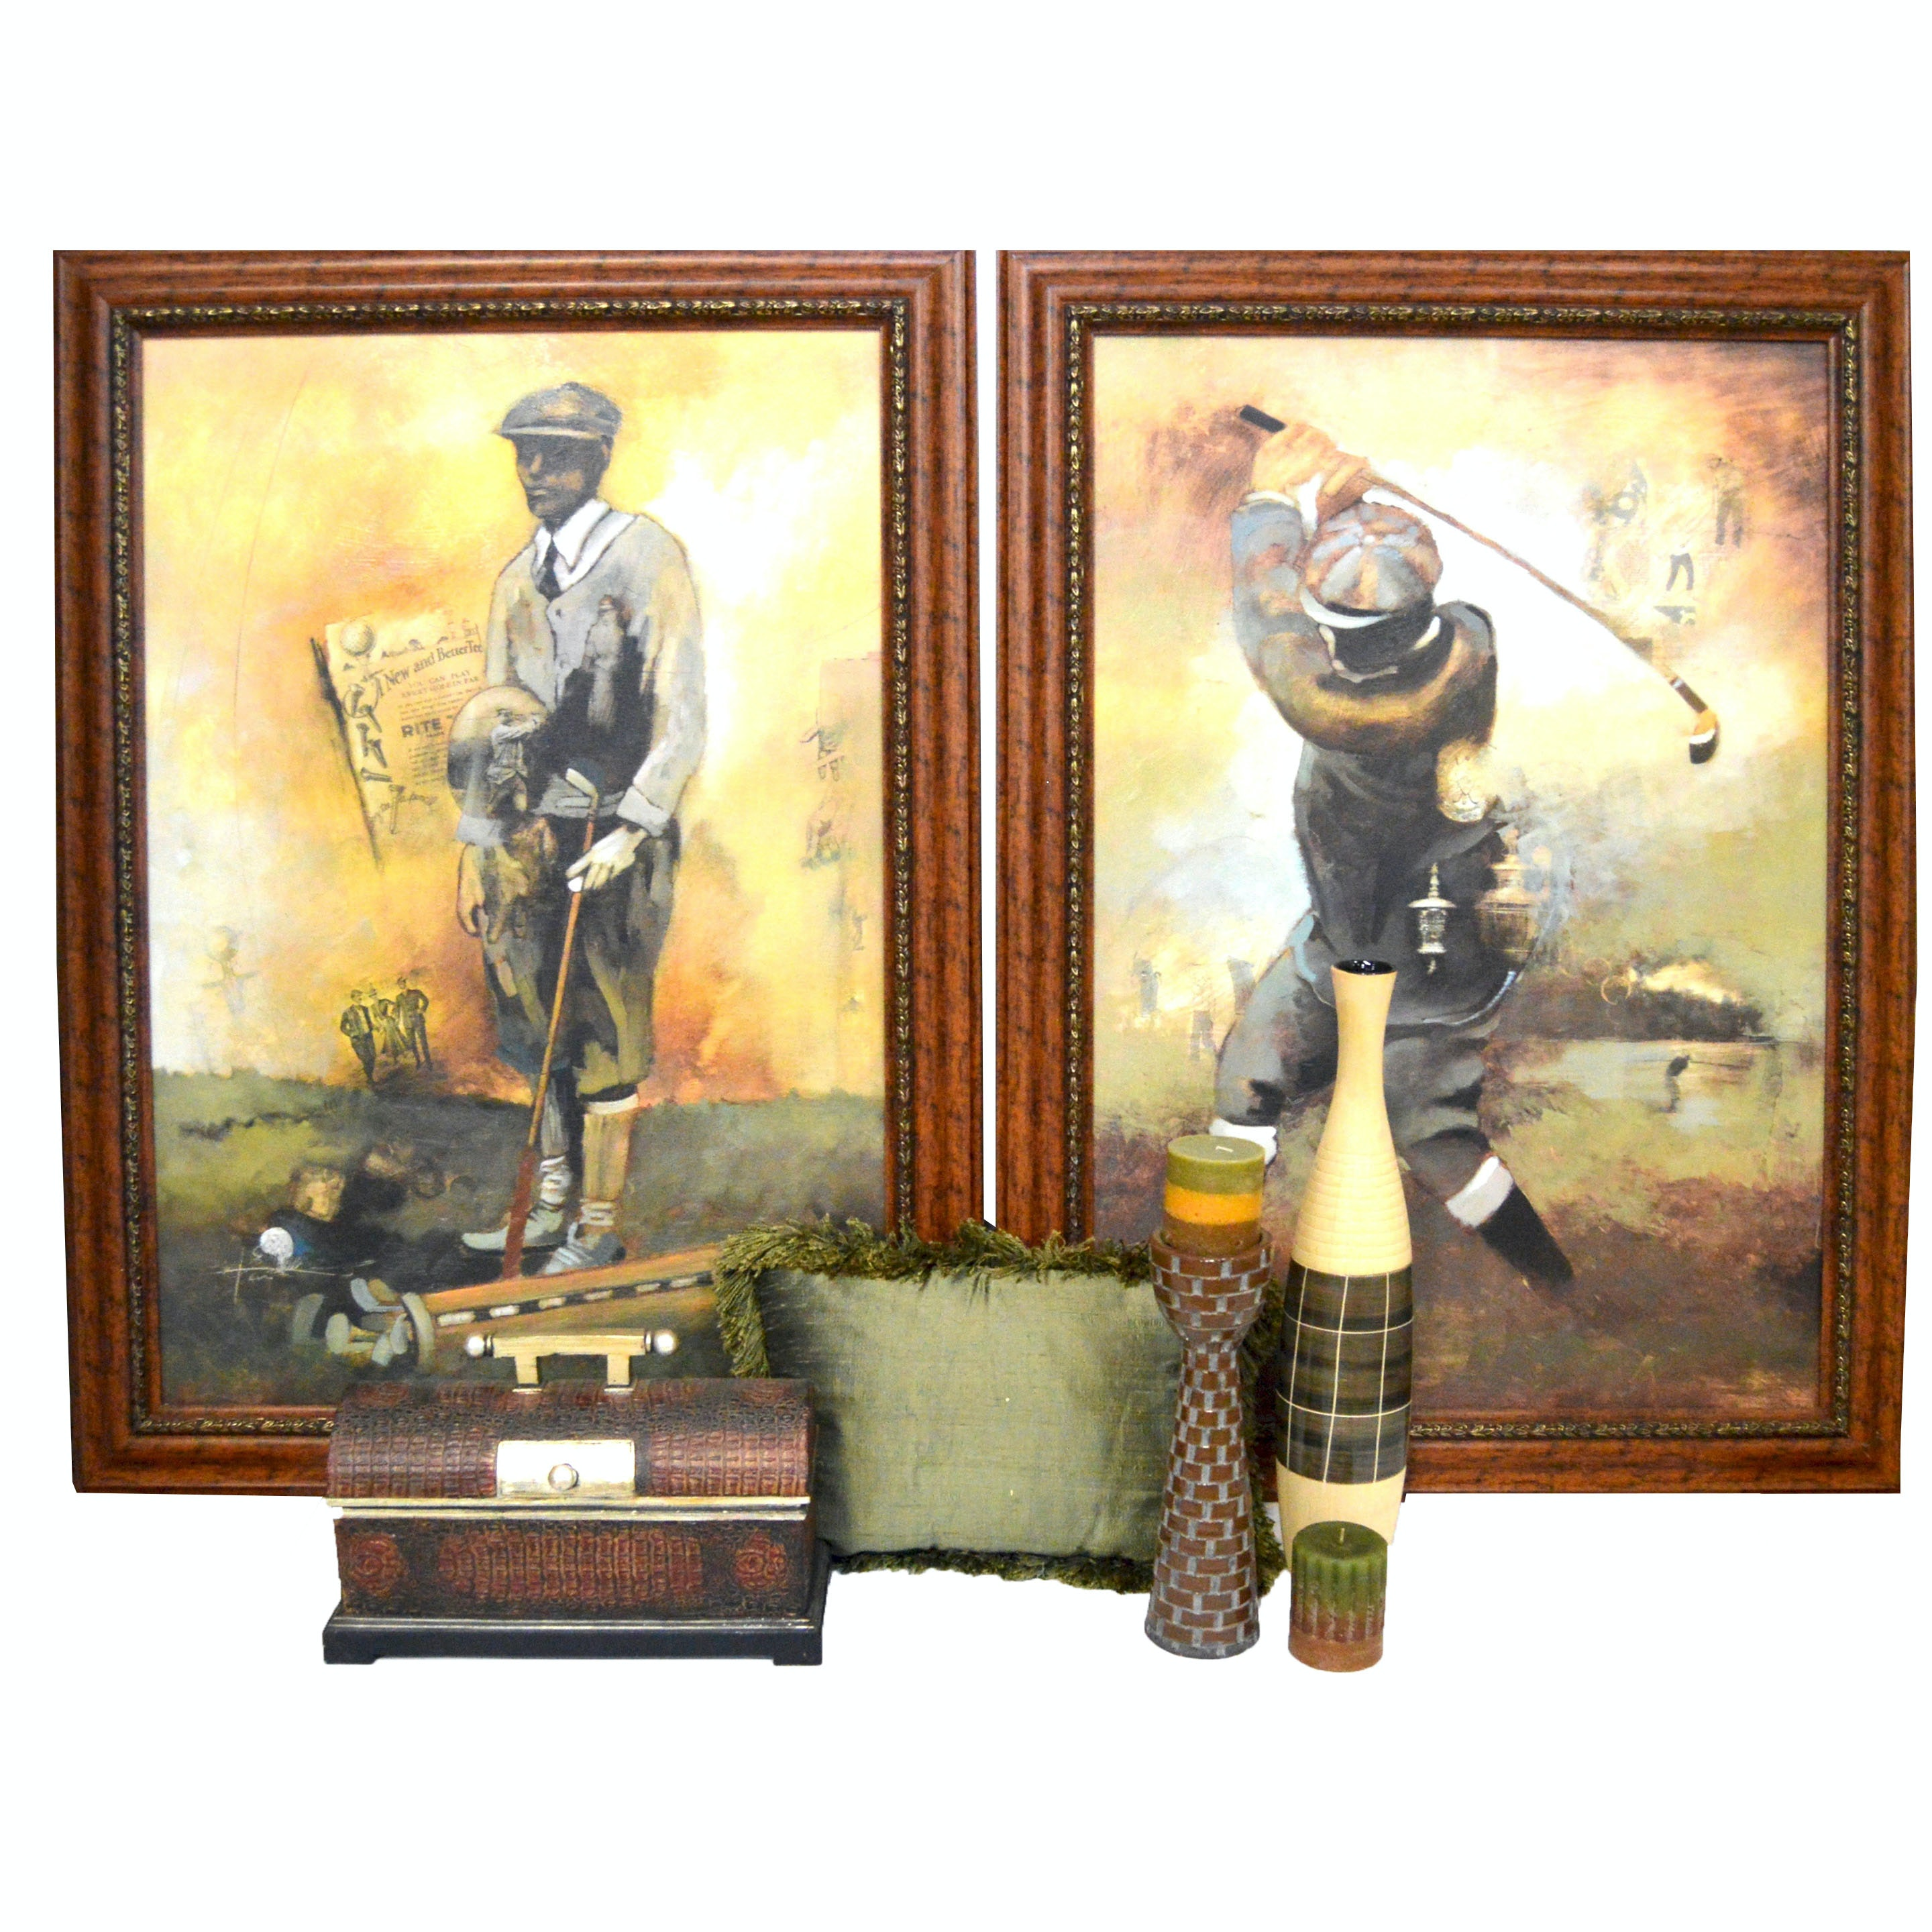 Golf Theme Artwork and Complementary Home Decor